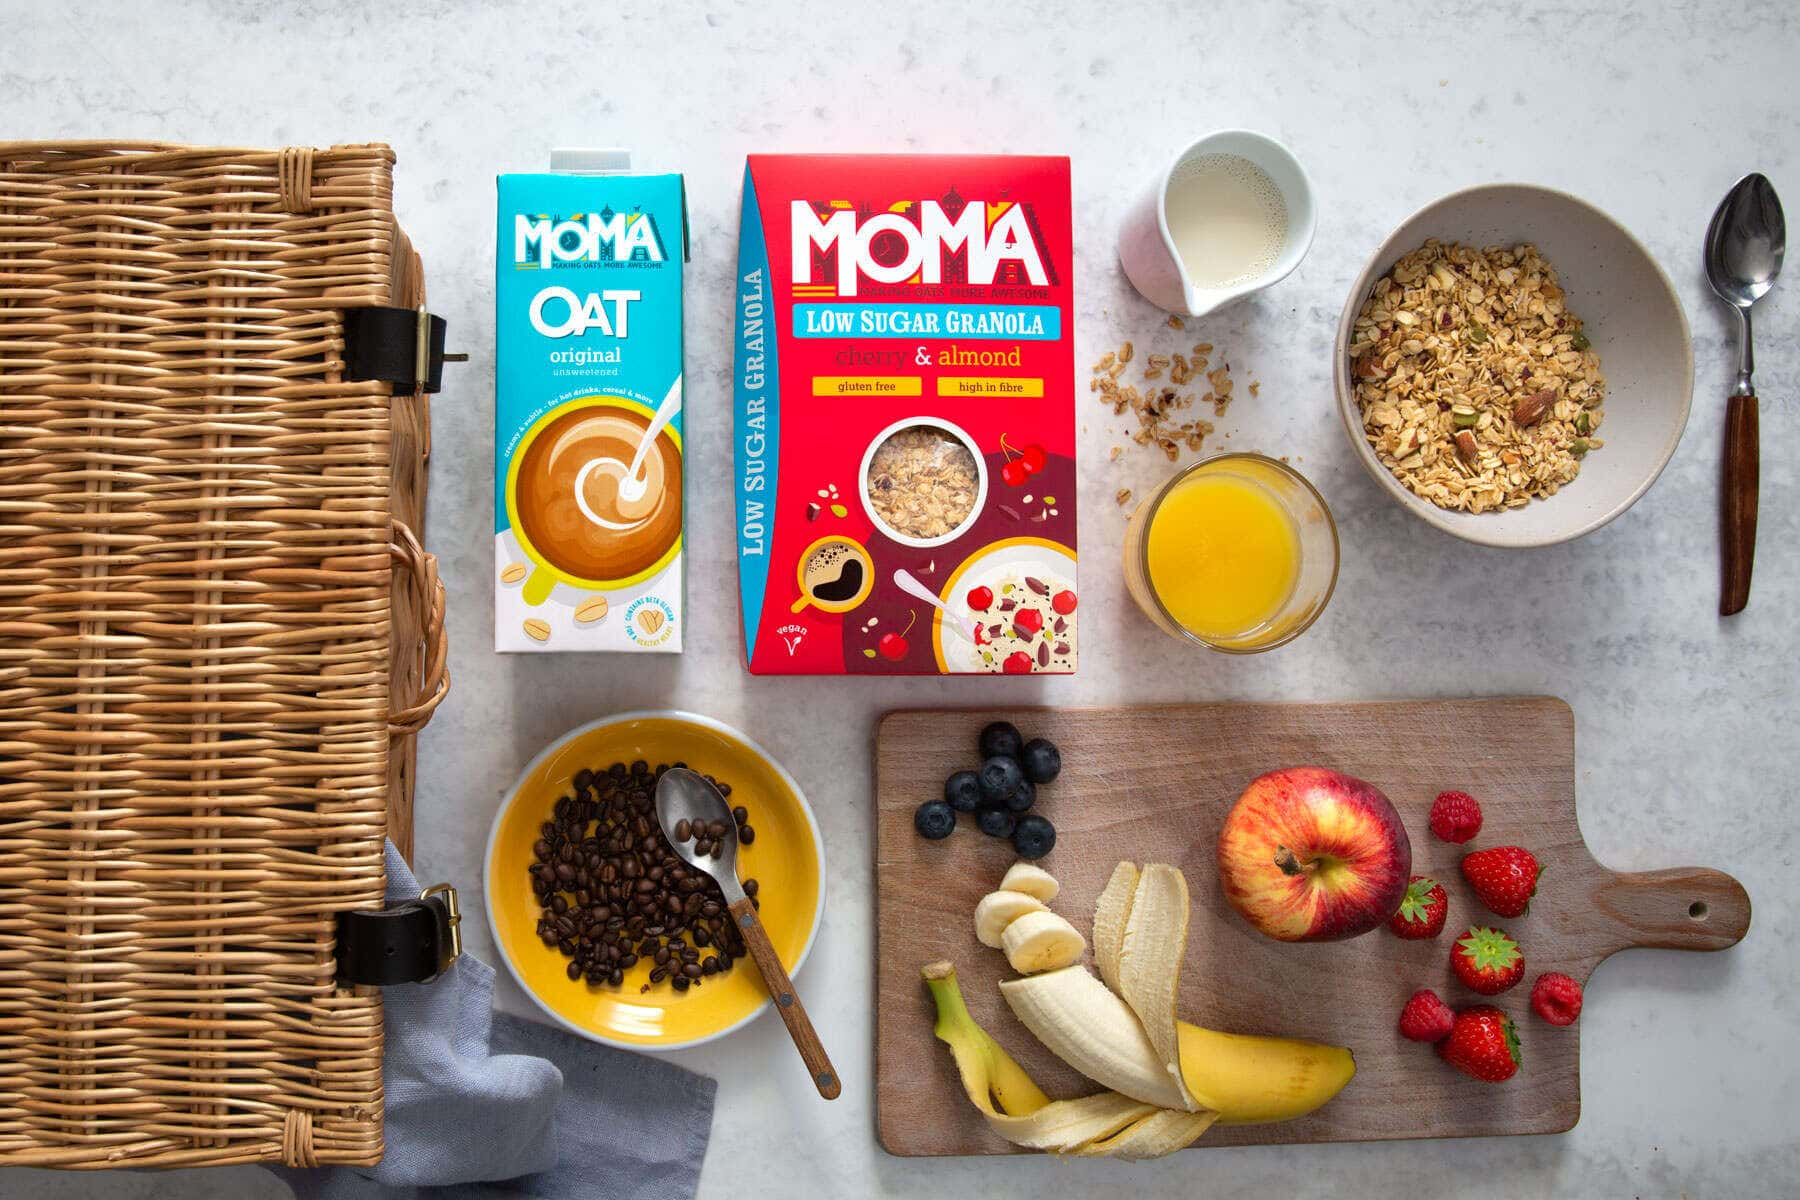 Moma food porridge and Oat milk with an assortment of breakfast condiments next to a picnic hamper